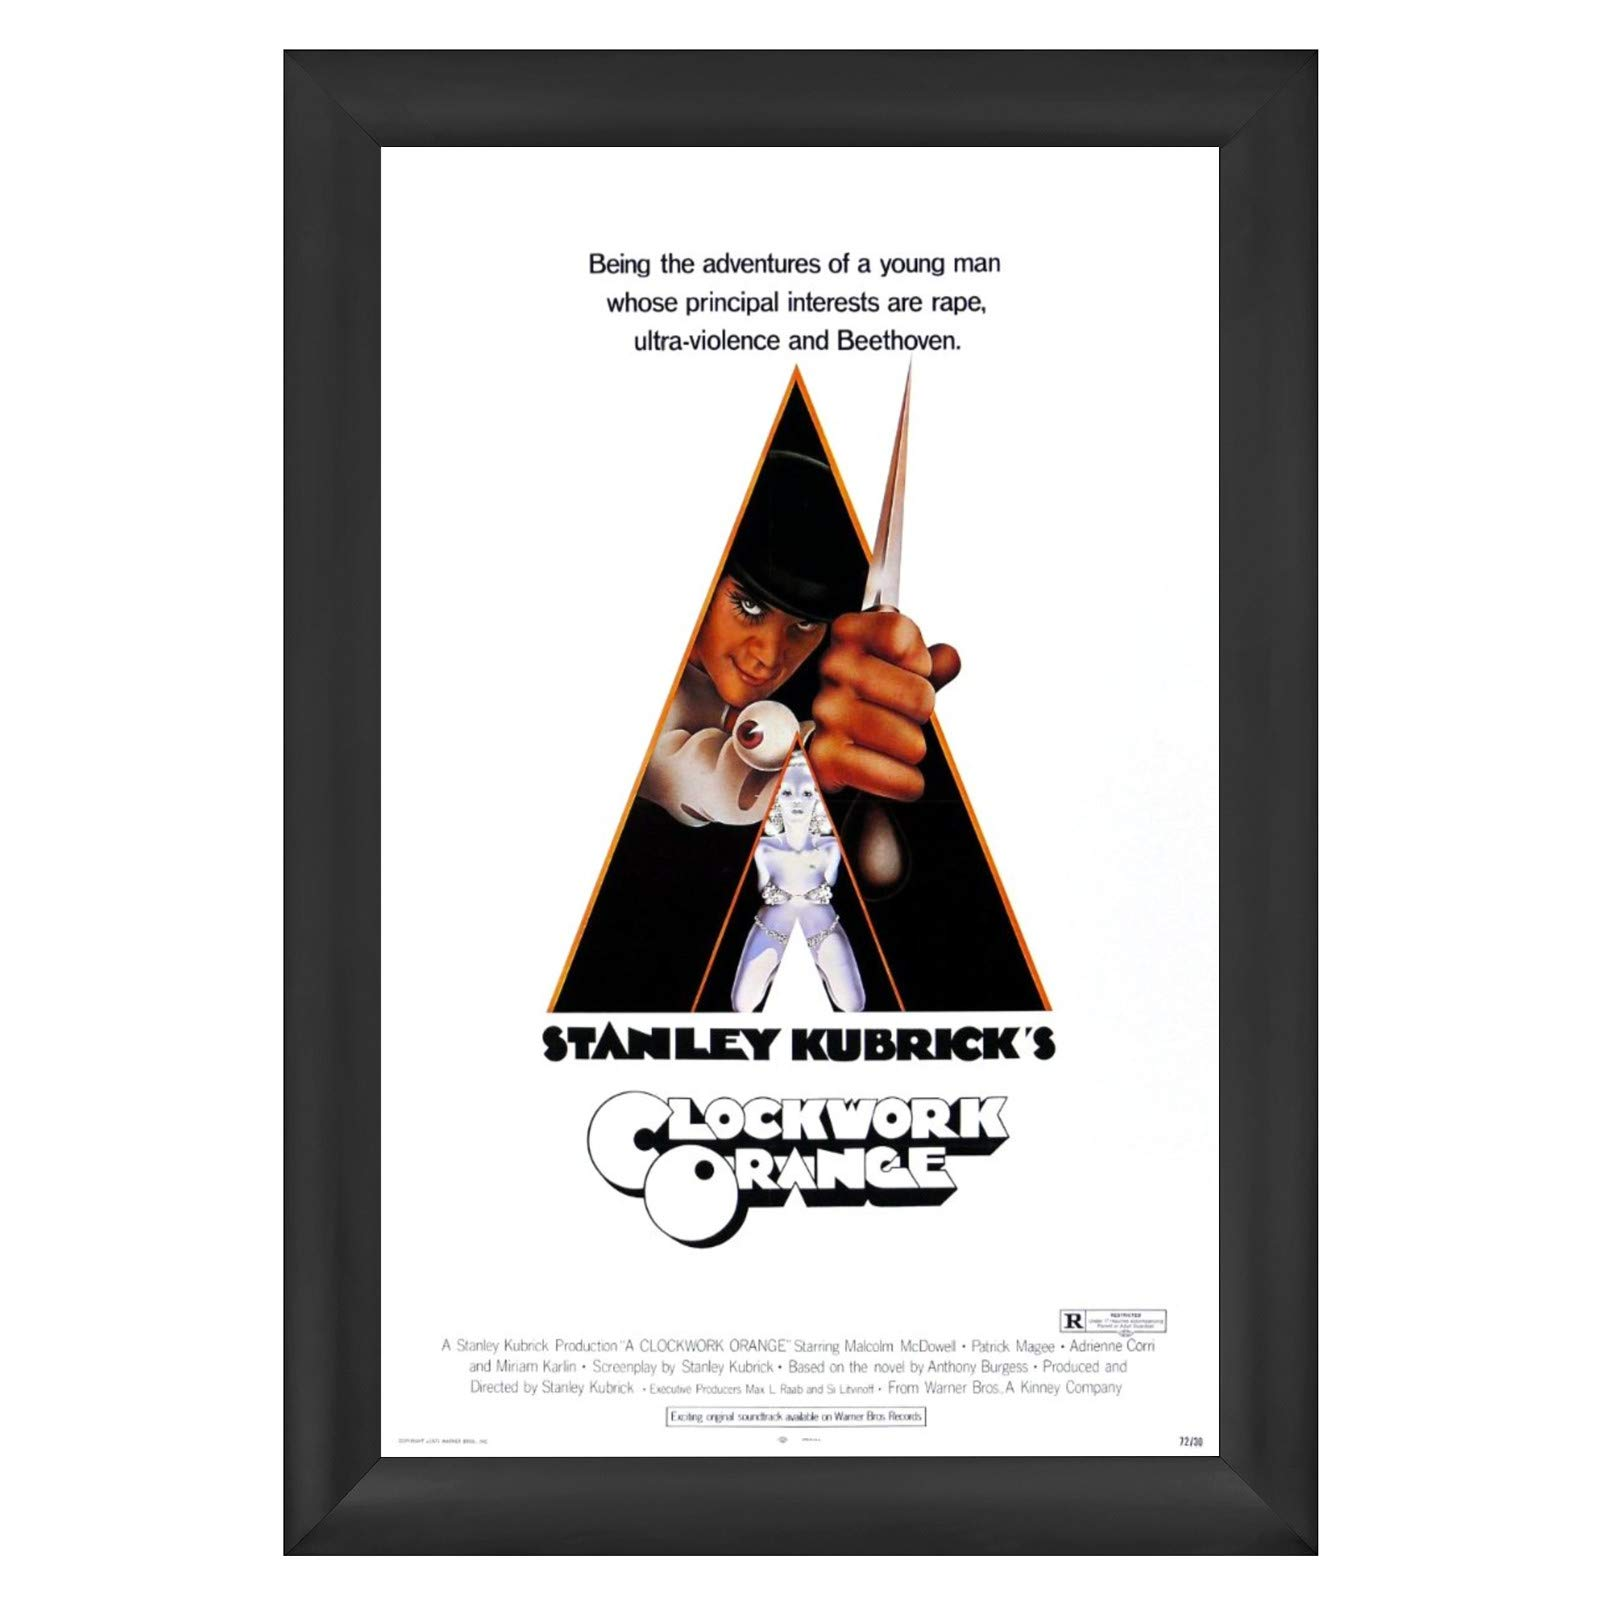 SnapeZo Poster Frame 27x41 Inches, Black 2.2 Inch Super-Wide Series Aluminum Profile, Front-Loading Snap Frame, Wall Mounting, Super-Wide Series